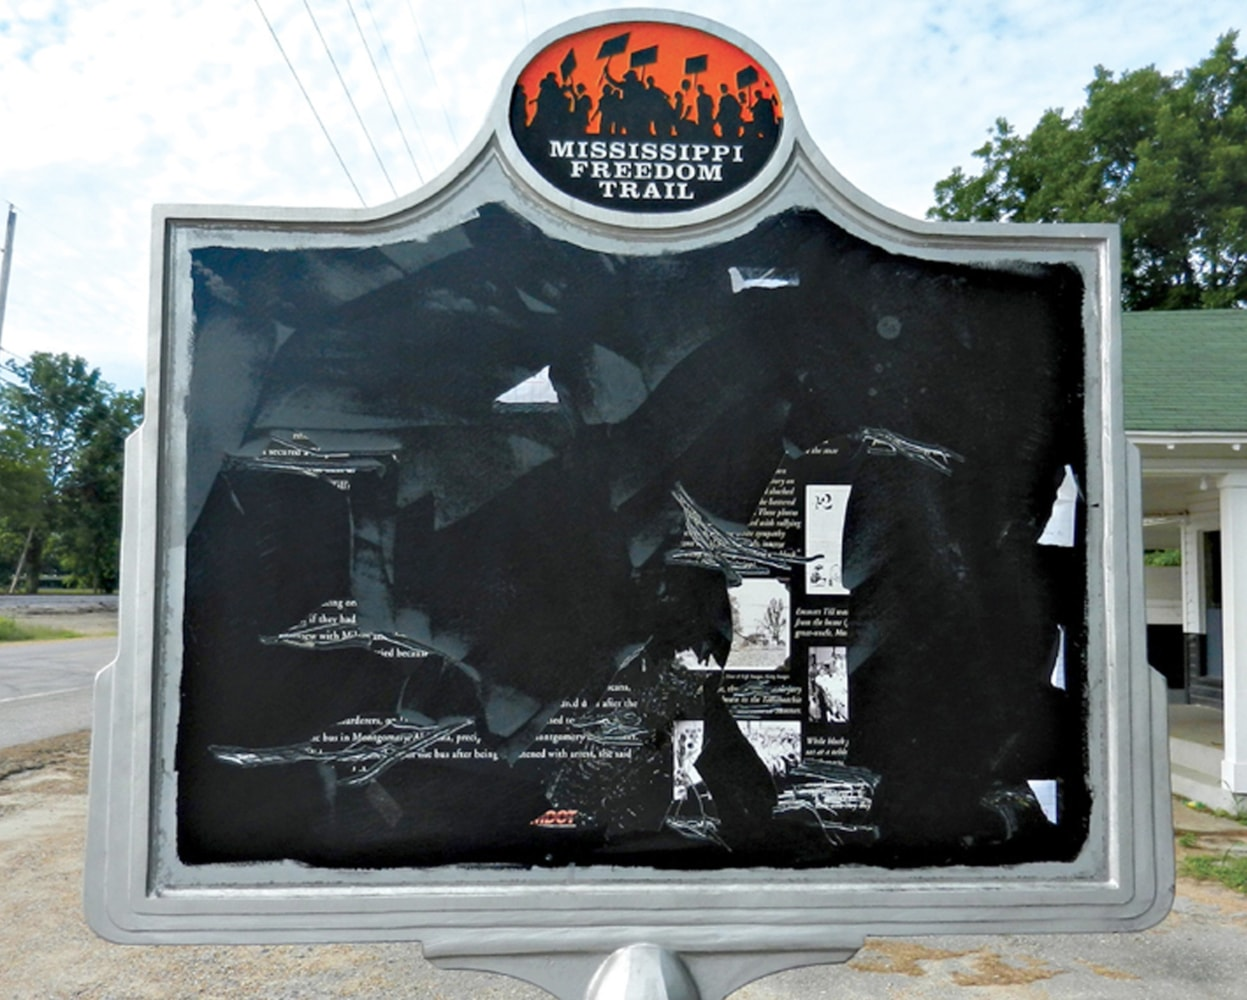 Vandals obliterate info on Emmett Till marker in Miss